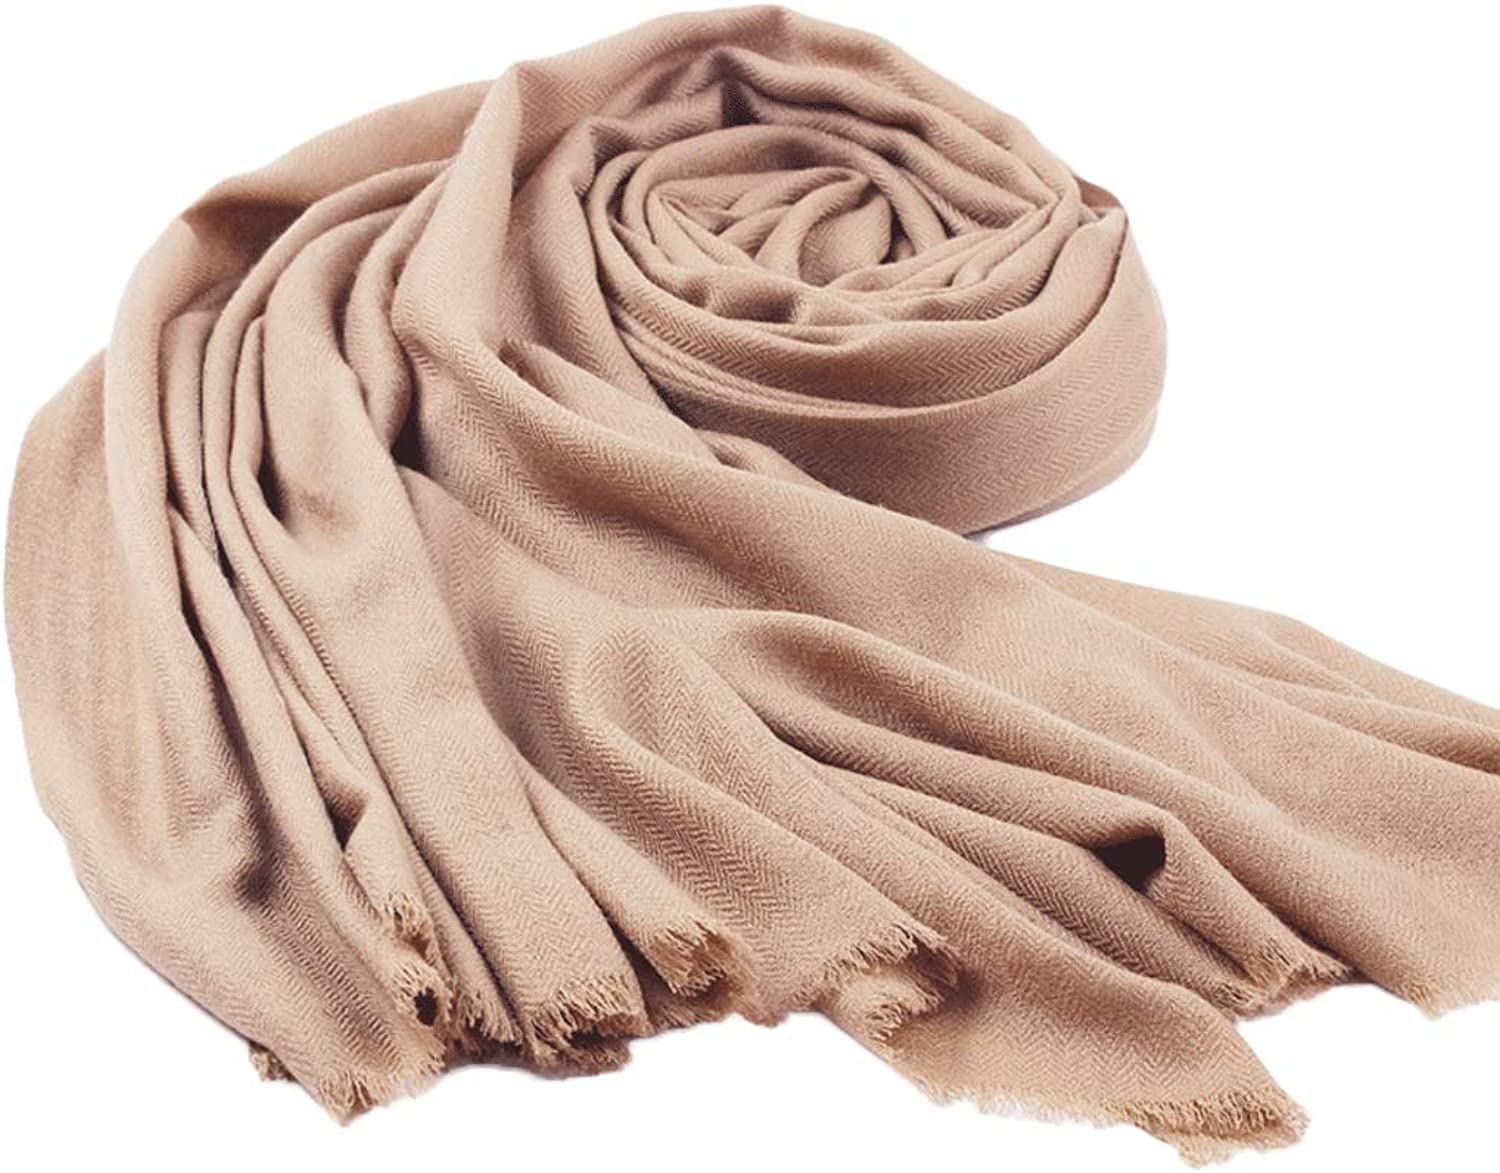 WXL Solid color Scarf Soft Shawl Woman Wrap Keep Warm Oversized Size 230cm × 90cm V (color   Camel)